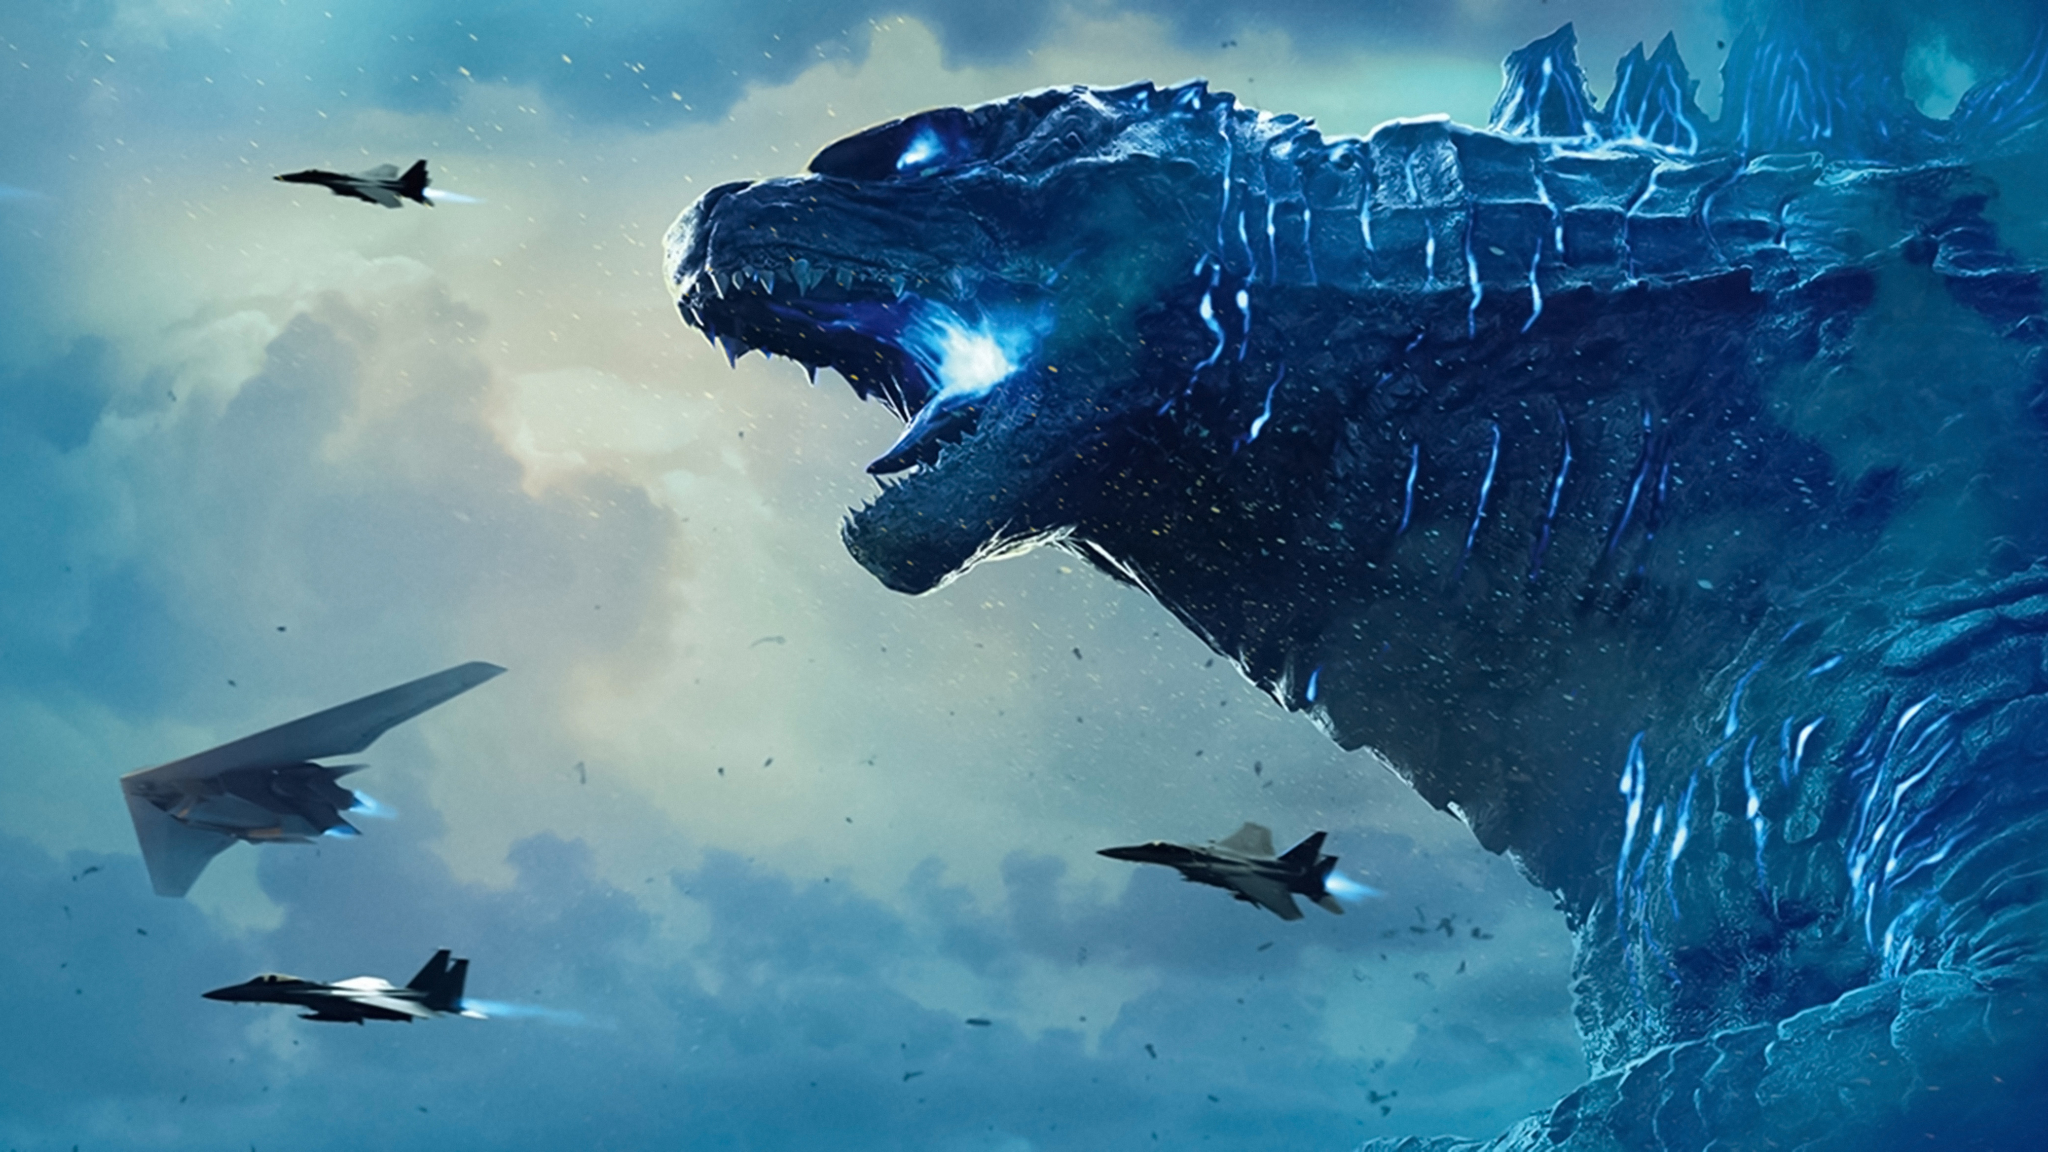 2048x1152 Godzilla 4k 8k Banner 2048x1152 Resolution